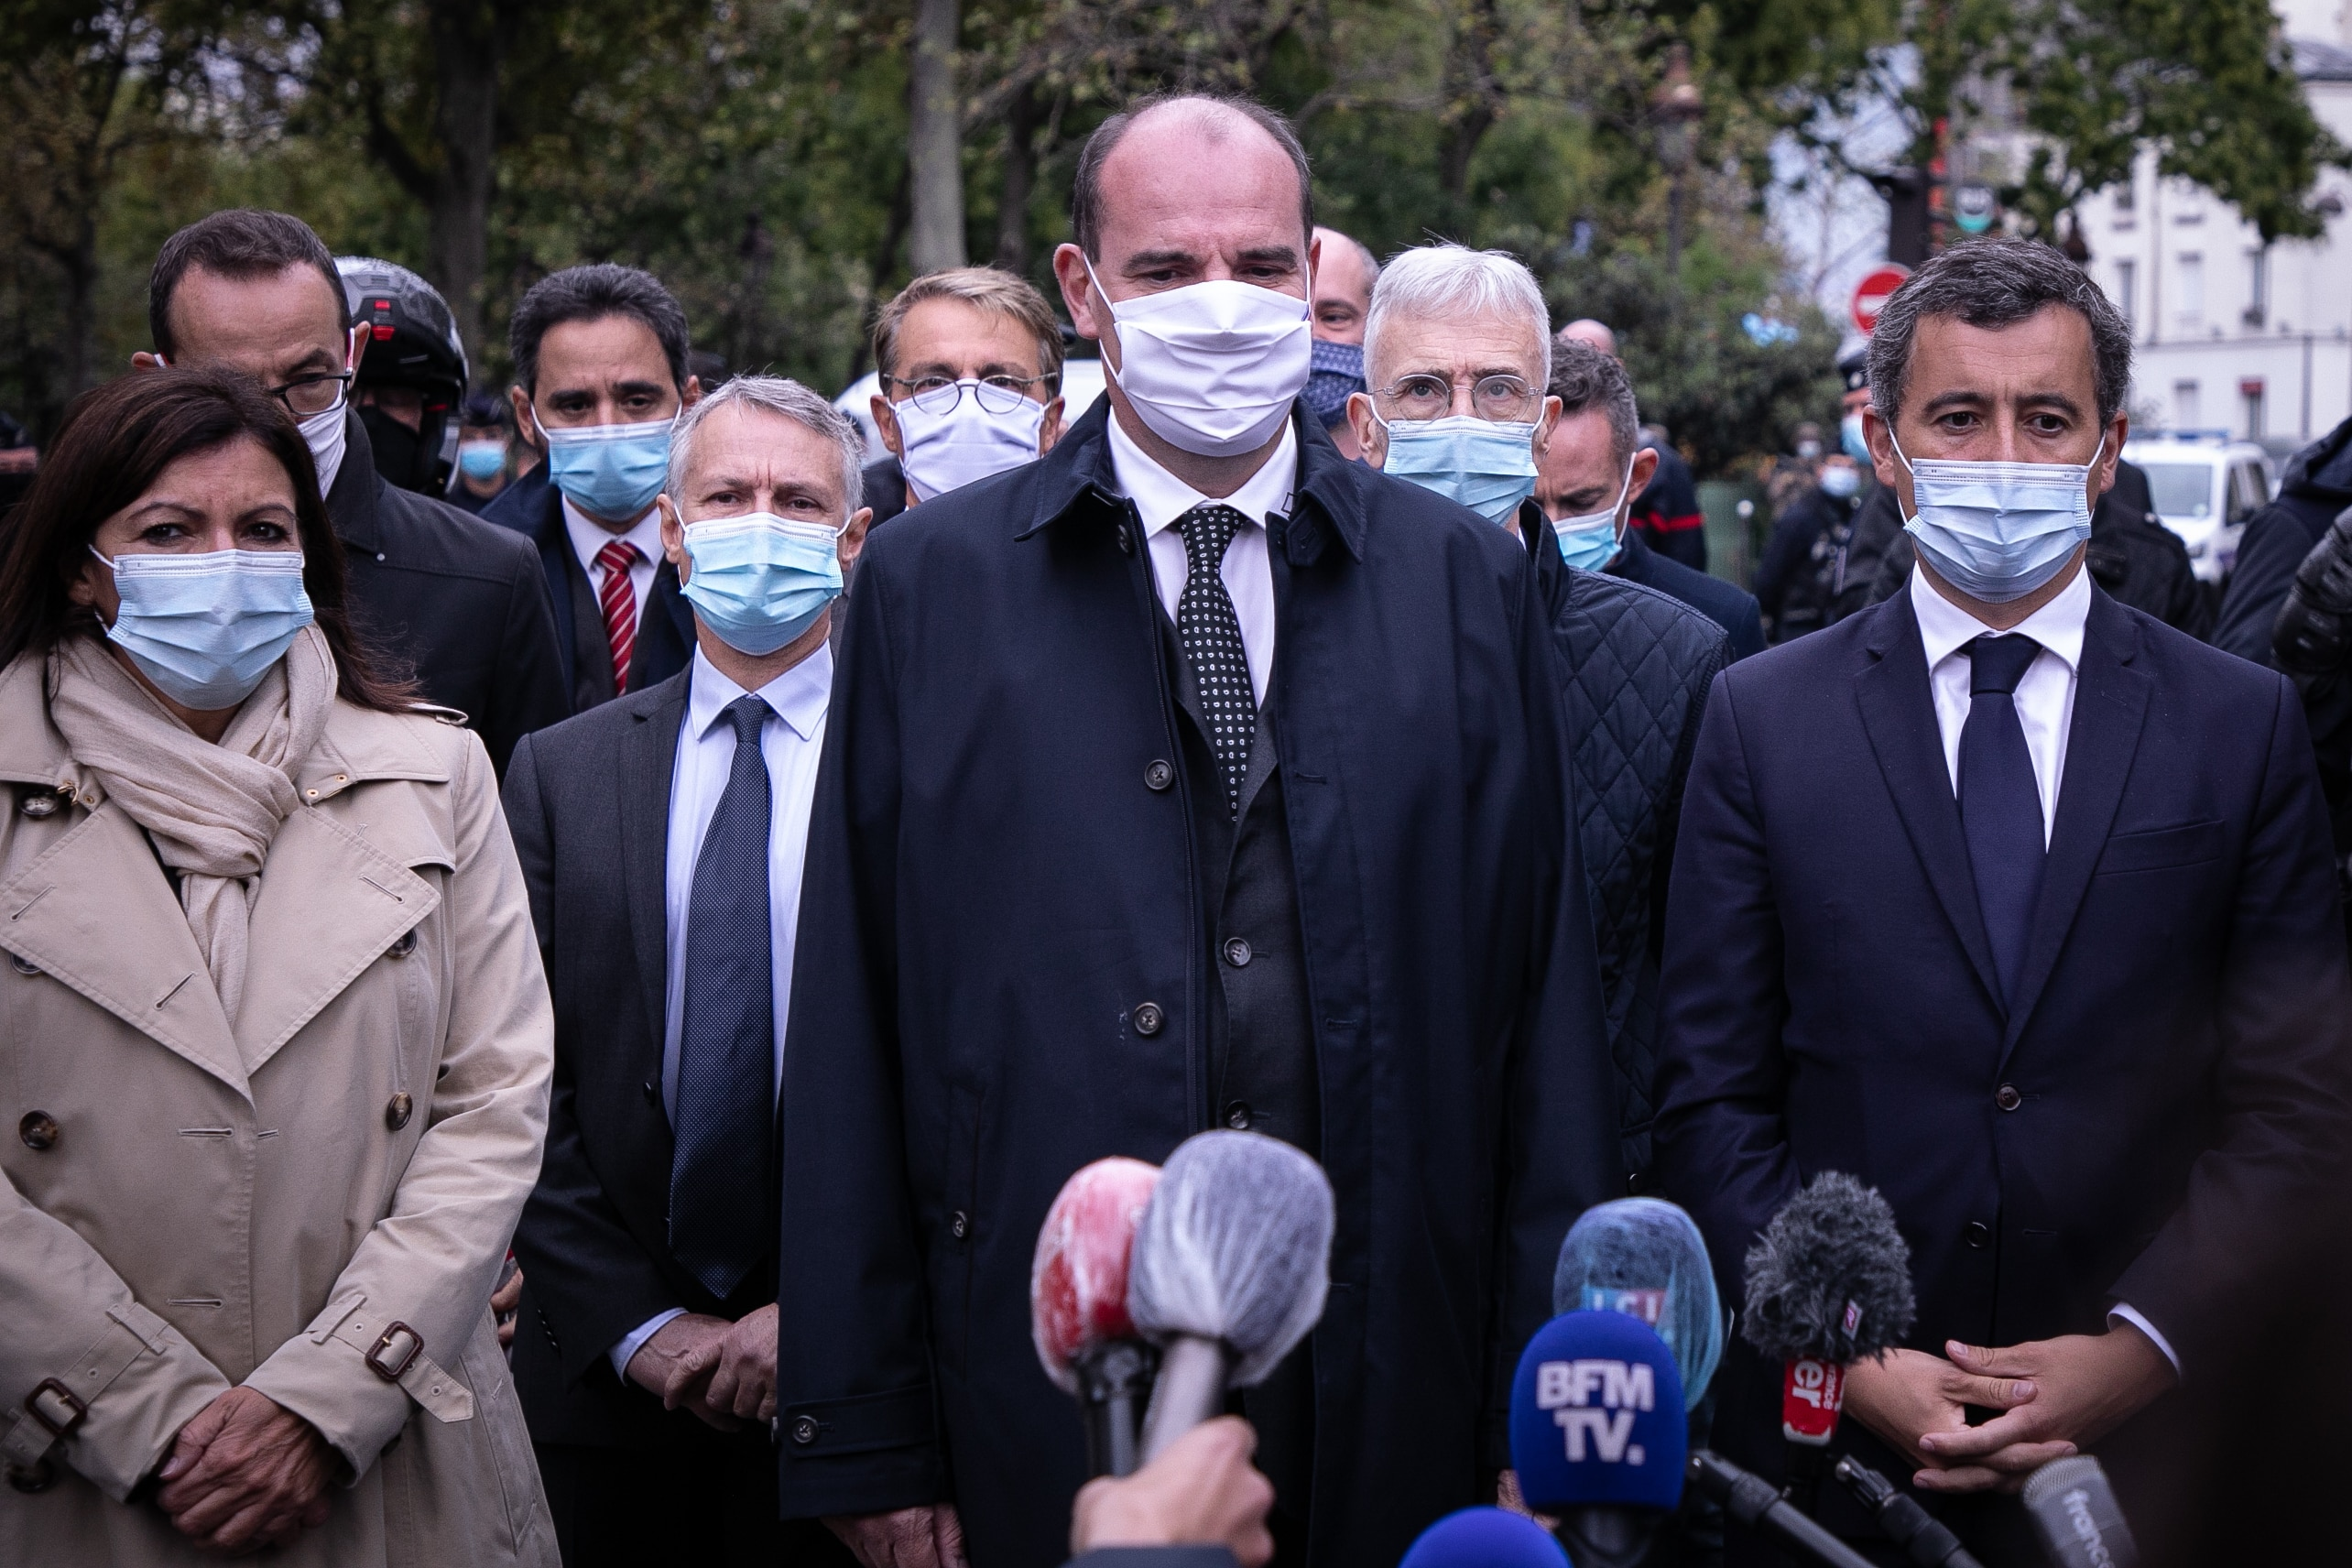 The Prime Minister of France, Jean Castex, accompanied by Grald Darmanin, Minister of Interior and Anne Hidalgo, Mayor of Paris, speaks about the attack.